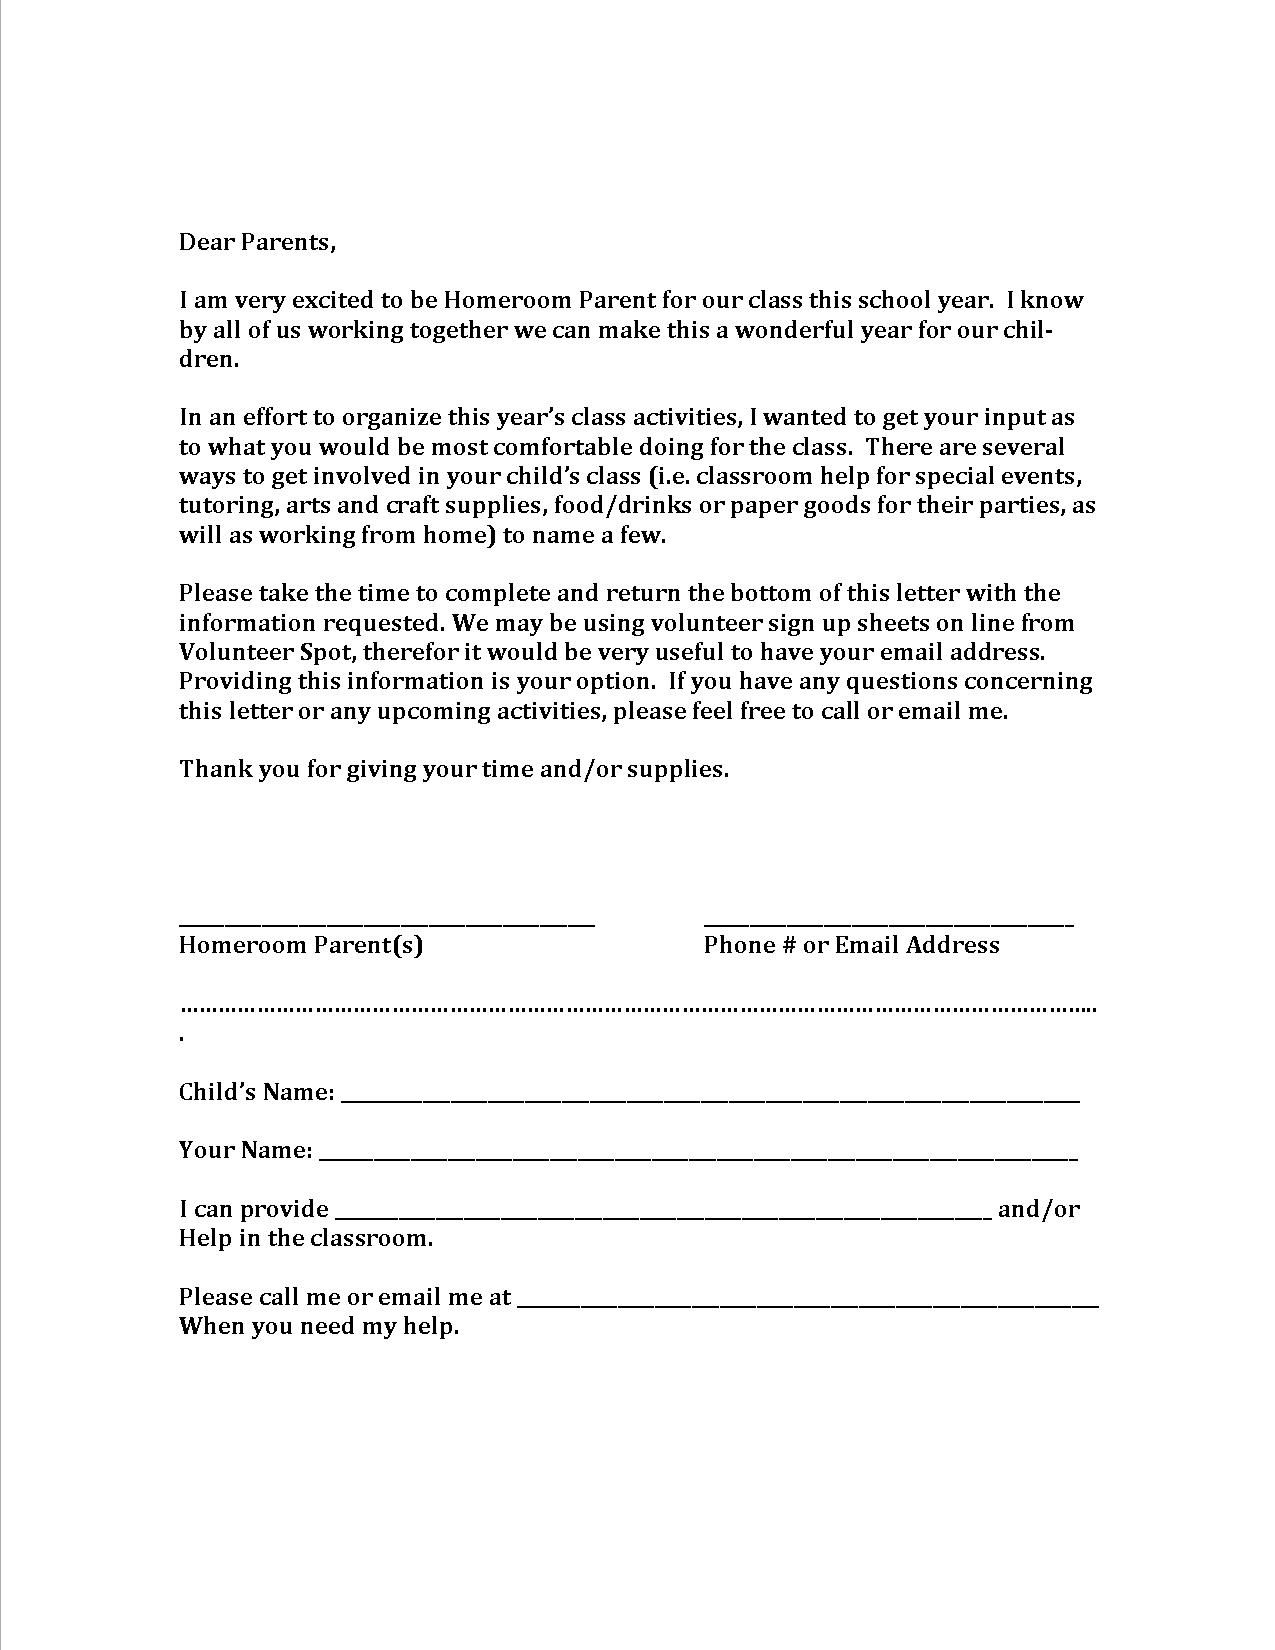 Volunteer letter template hdvolunteer letter template application volunteer letter template hdvolunteer letter template application letter sample spiritdancerdesigns Images